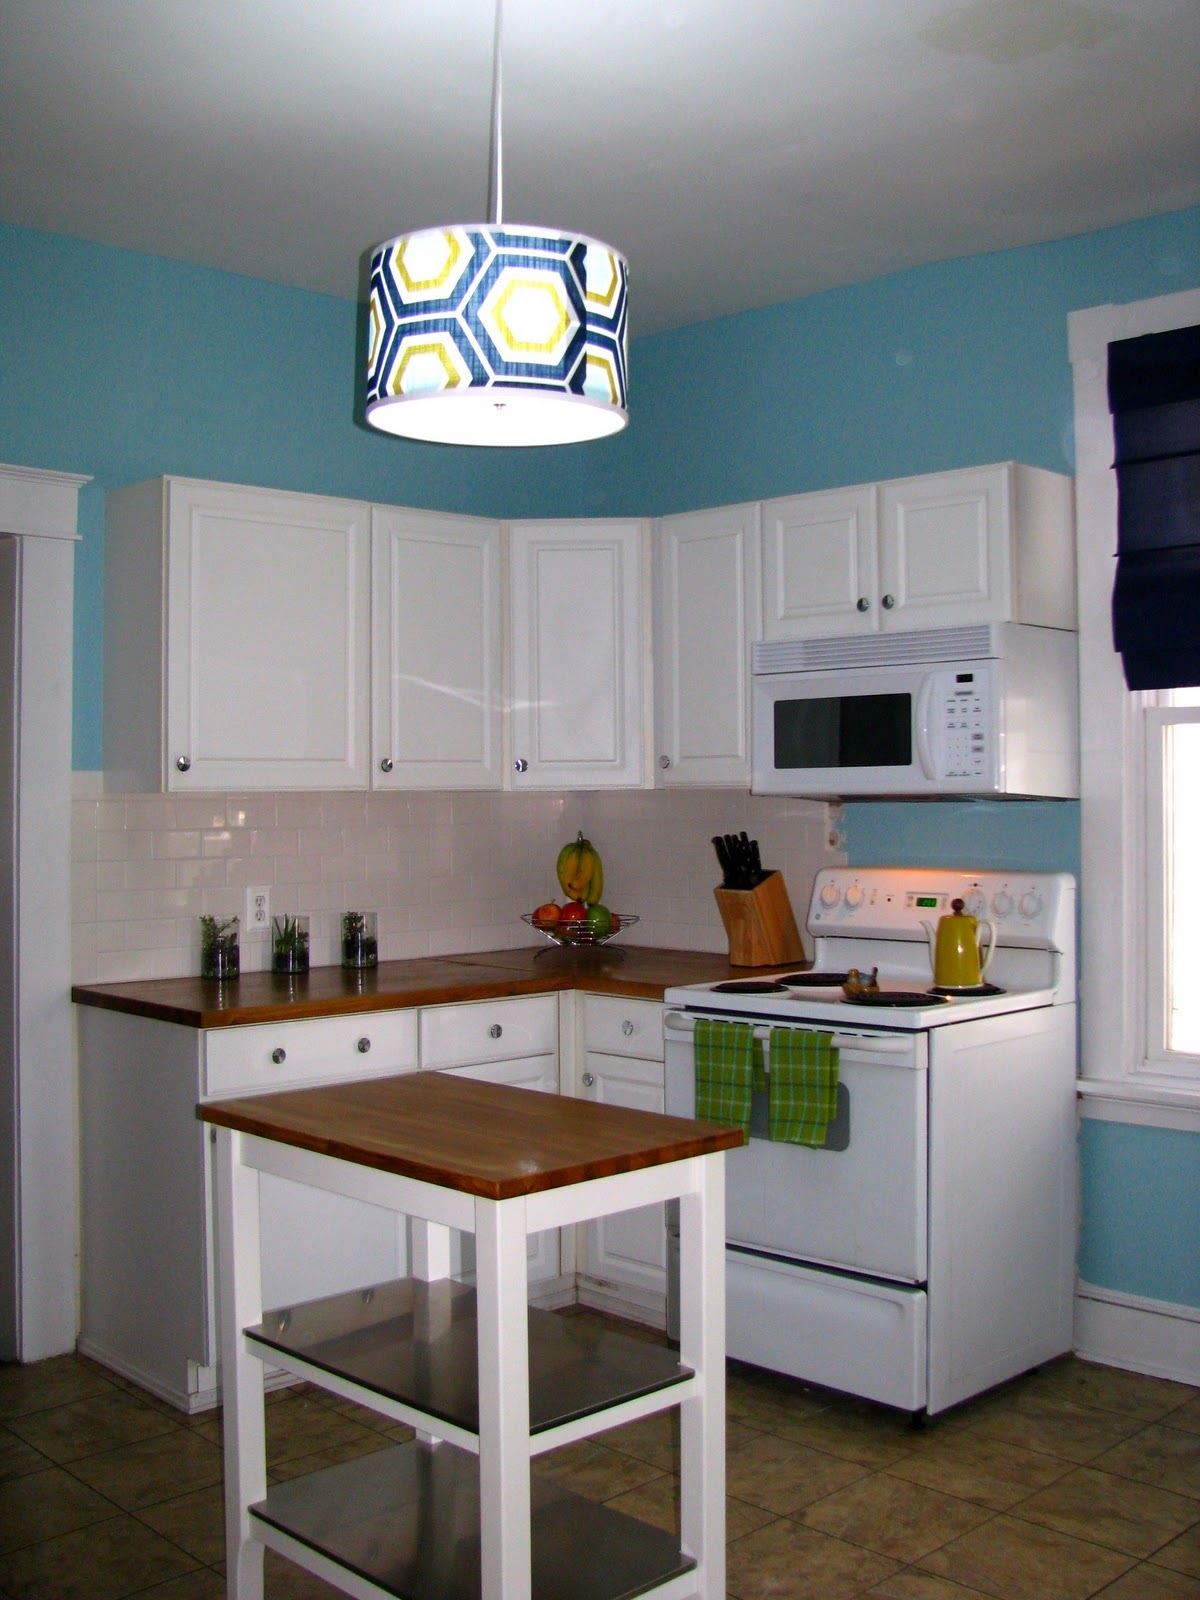 where can i buy an island for my kitchen countertops laminate applying creative cheap updates ideas the new ...